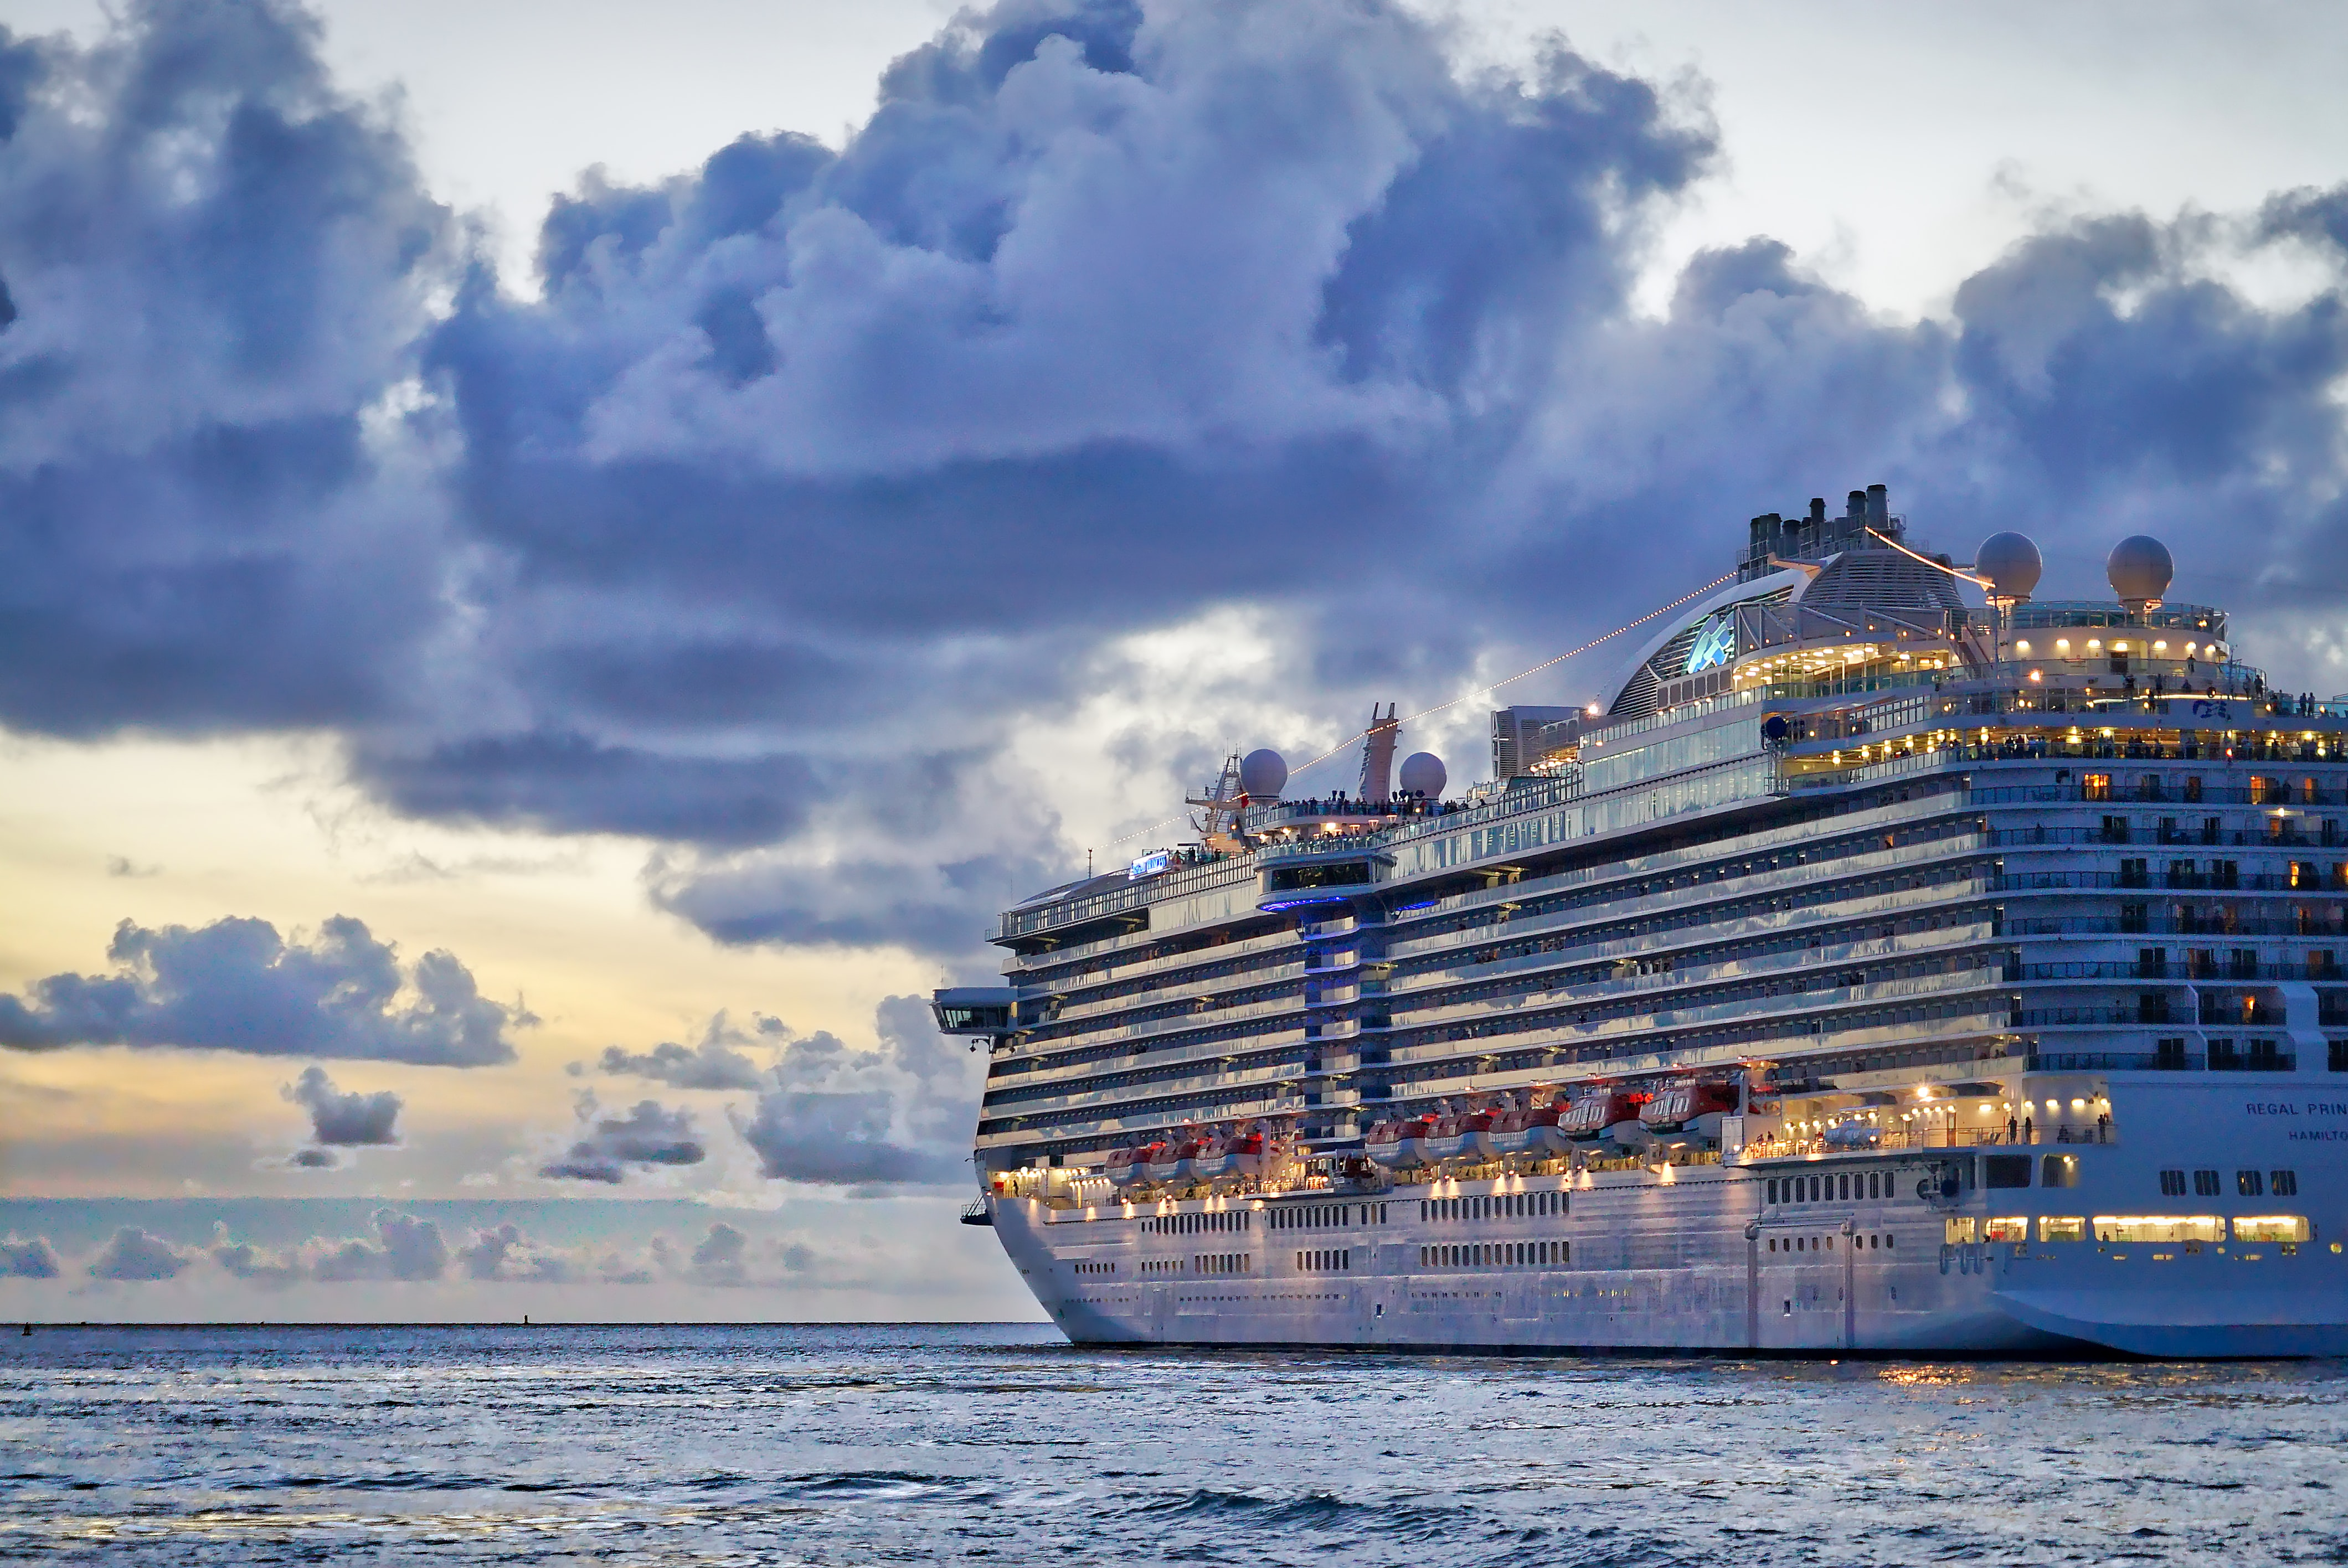 Cruise Pictures HQ Download Free Images on